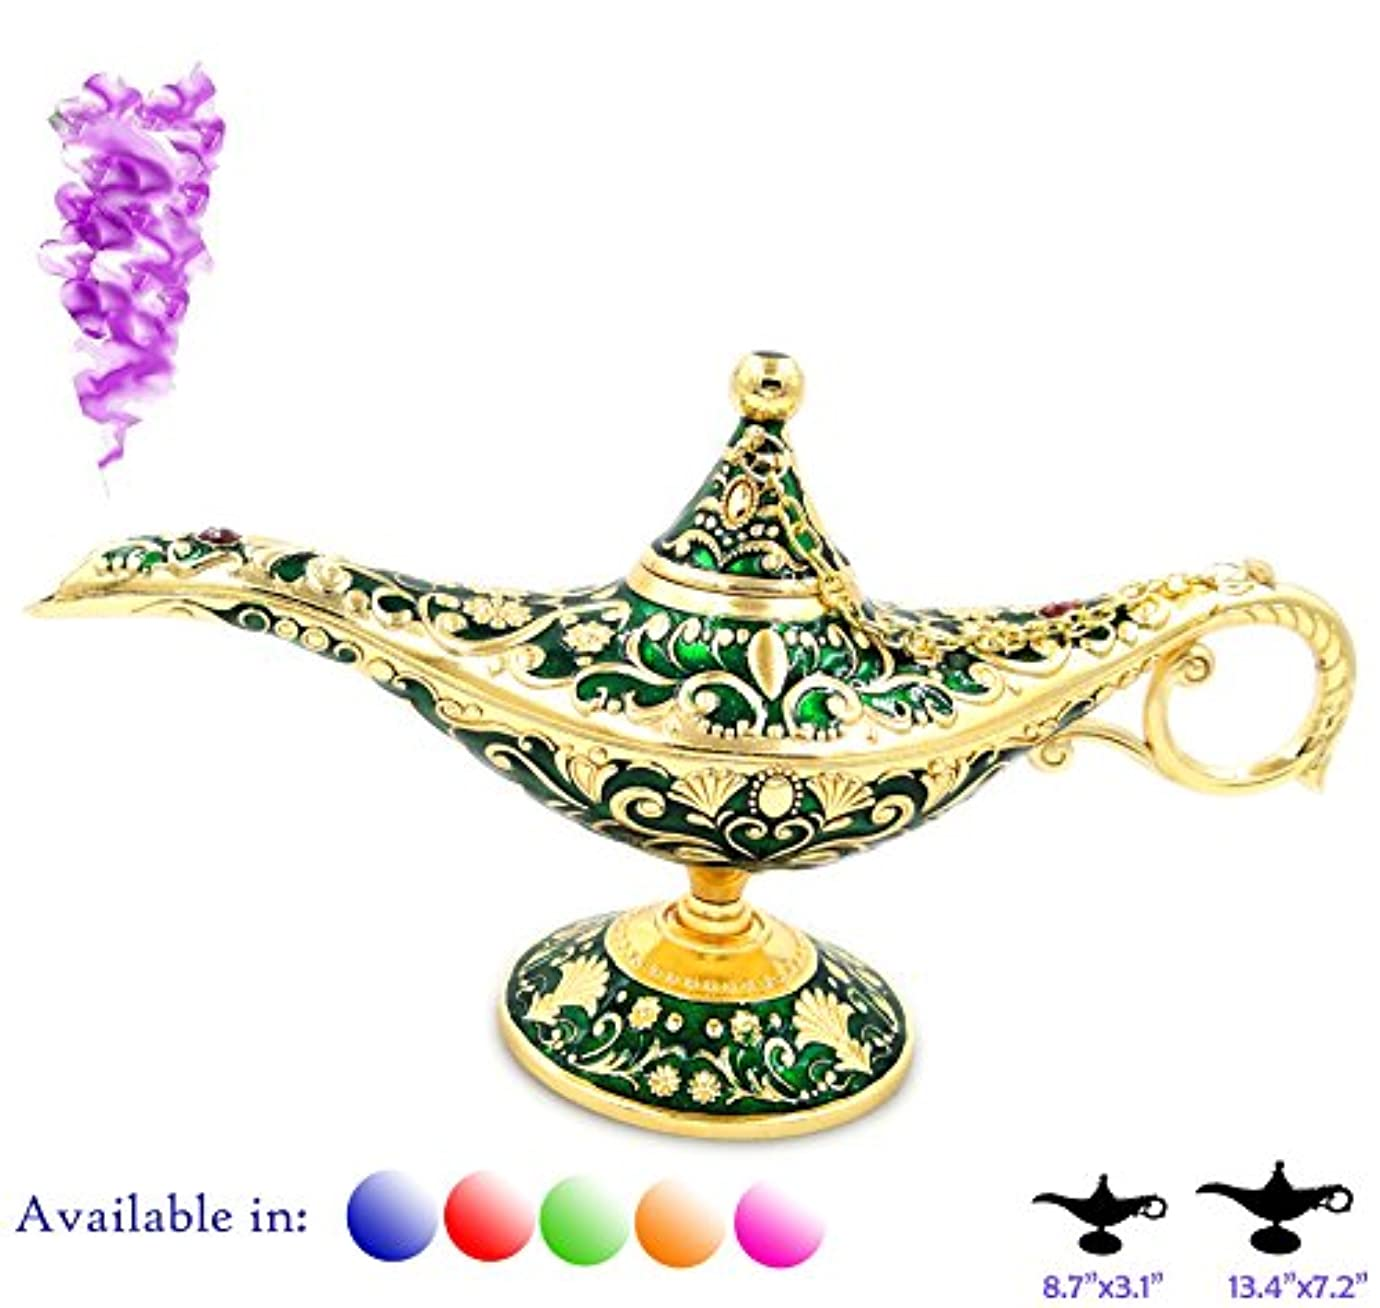 凡例Aladdin Magic Genieライトランプポットクラシックカラー真鍮Aladdin Genie Lamps Incense Burners Normal 8.7x3.1